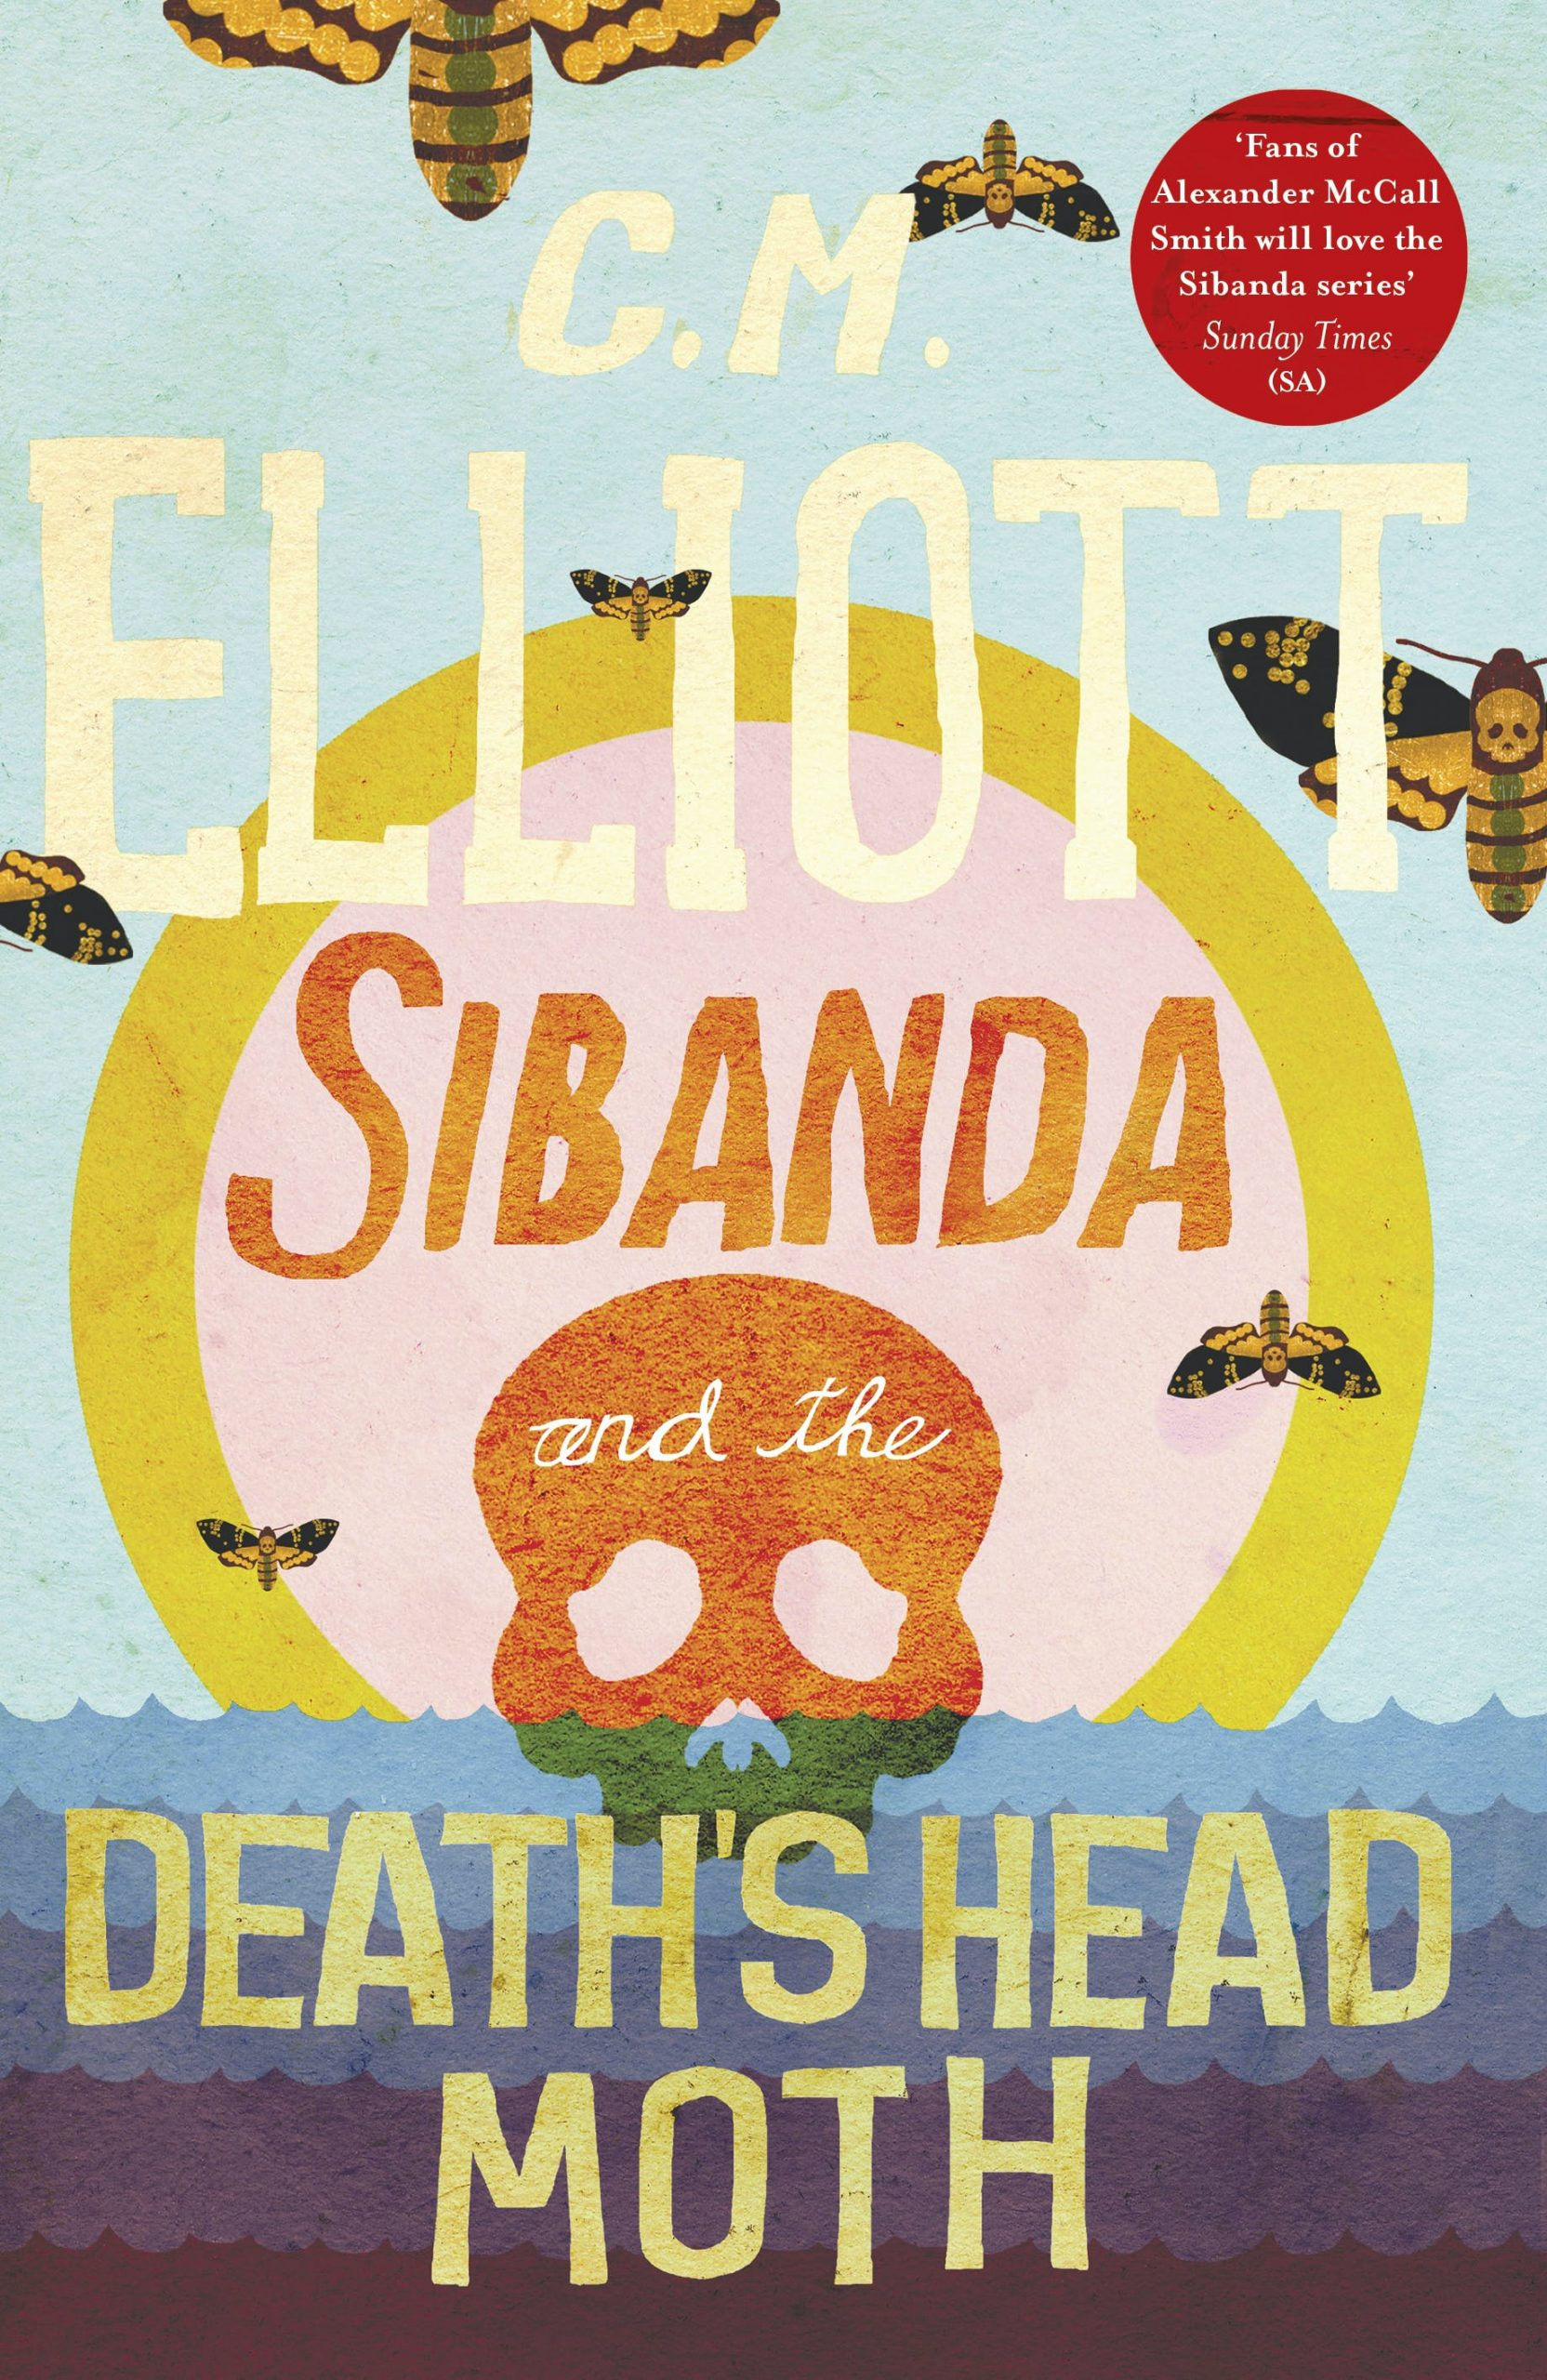 Sibanda and the Death's Head Moth